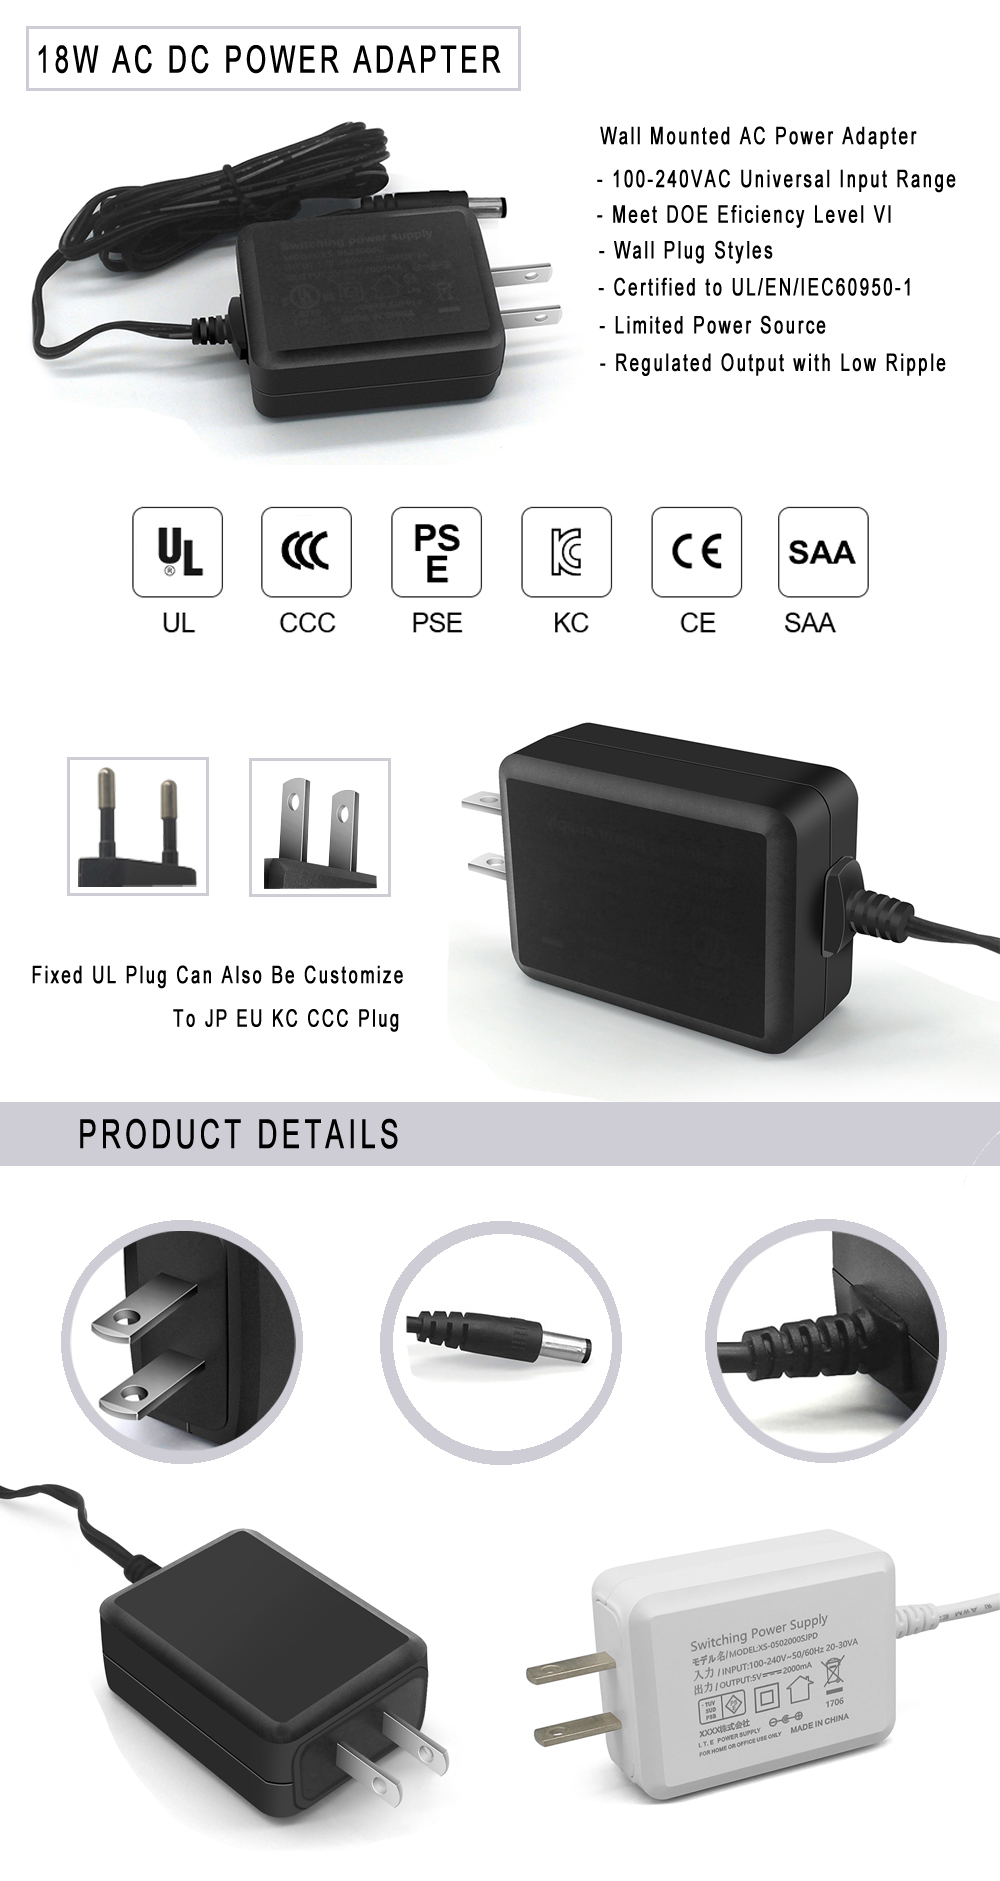 Input 100 240 V ac 50/60 hz switching power supply 5 v 12 v 24 v 0.5a 1a 1.5a 2a 2.5a 3a set top box ac dc power adapter